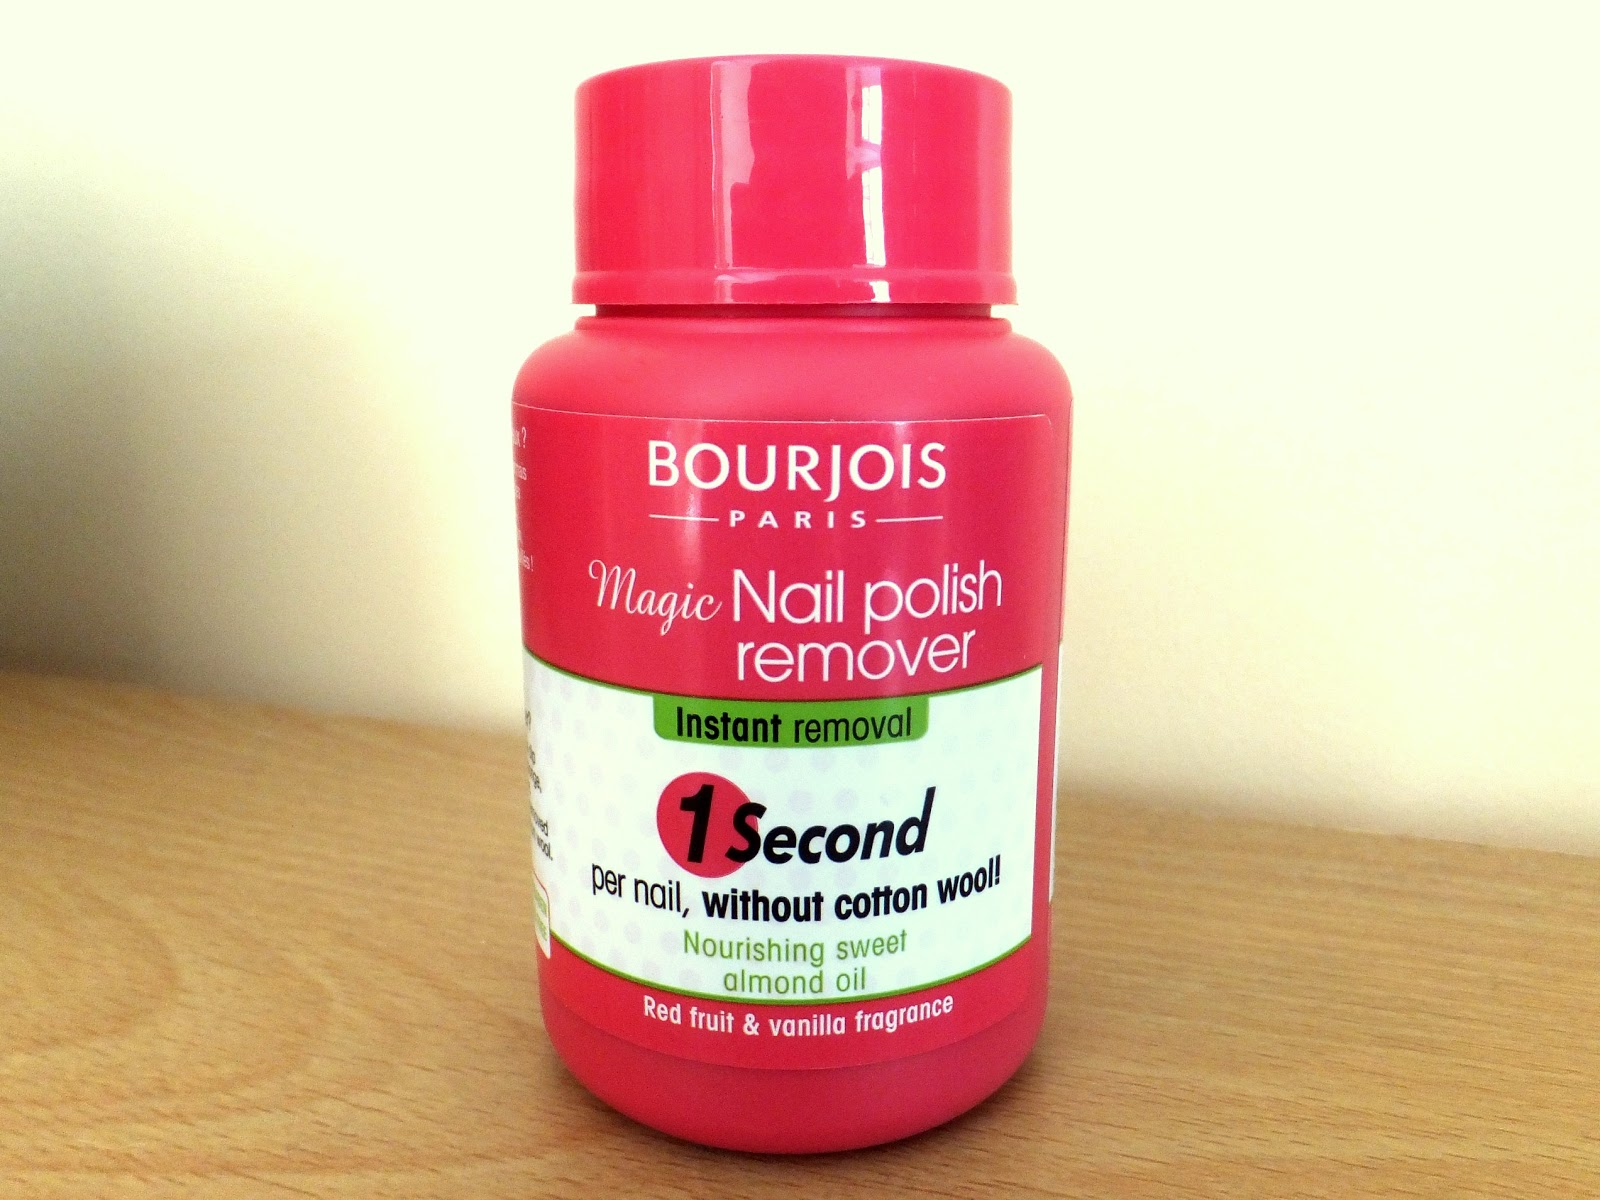 Ditzy Glamour Review Bourjois Magic Nail Polish Remover